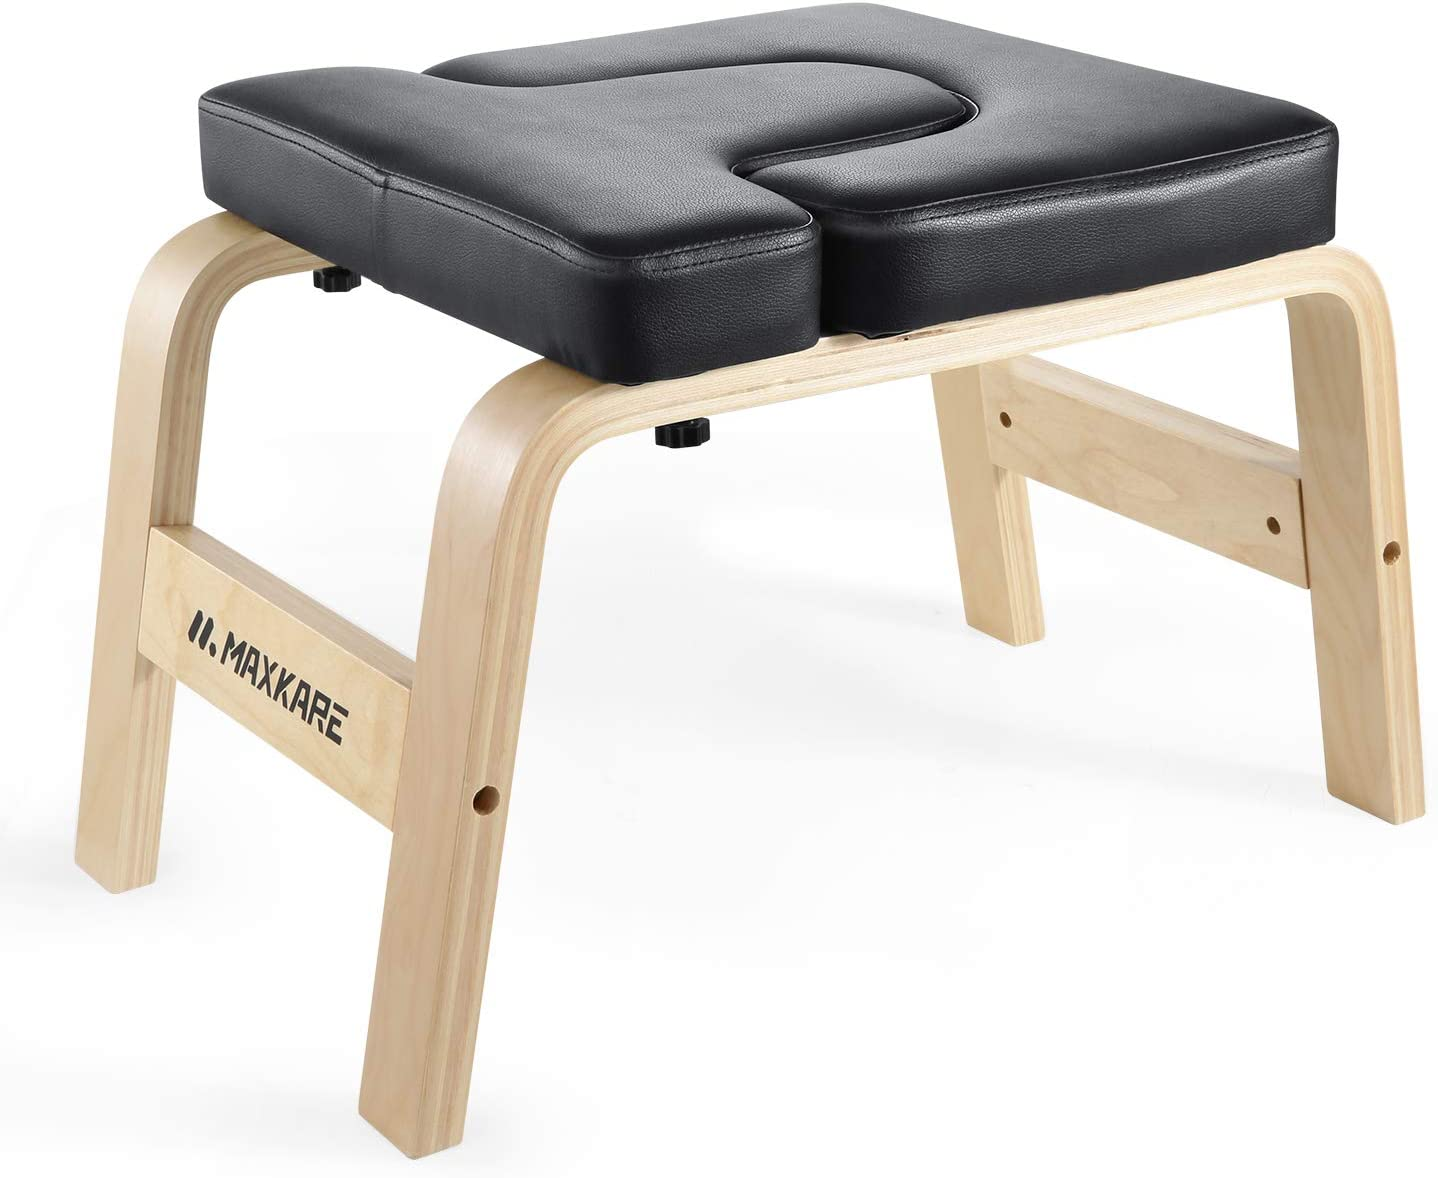 MaxKare Yoga Headstand Bench Wood Stand Yoga Inversion Chair Stool Handstand with PVC Pads for Family, Gym – Relieve Fatigue and Shape The Body Black